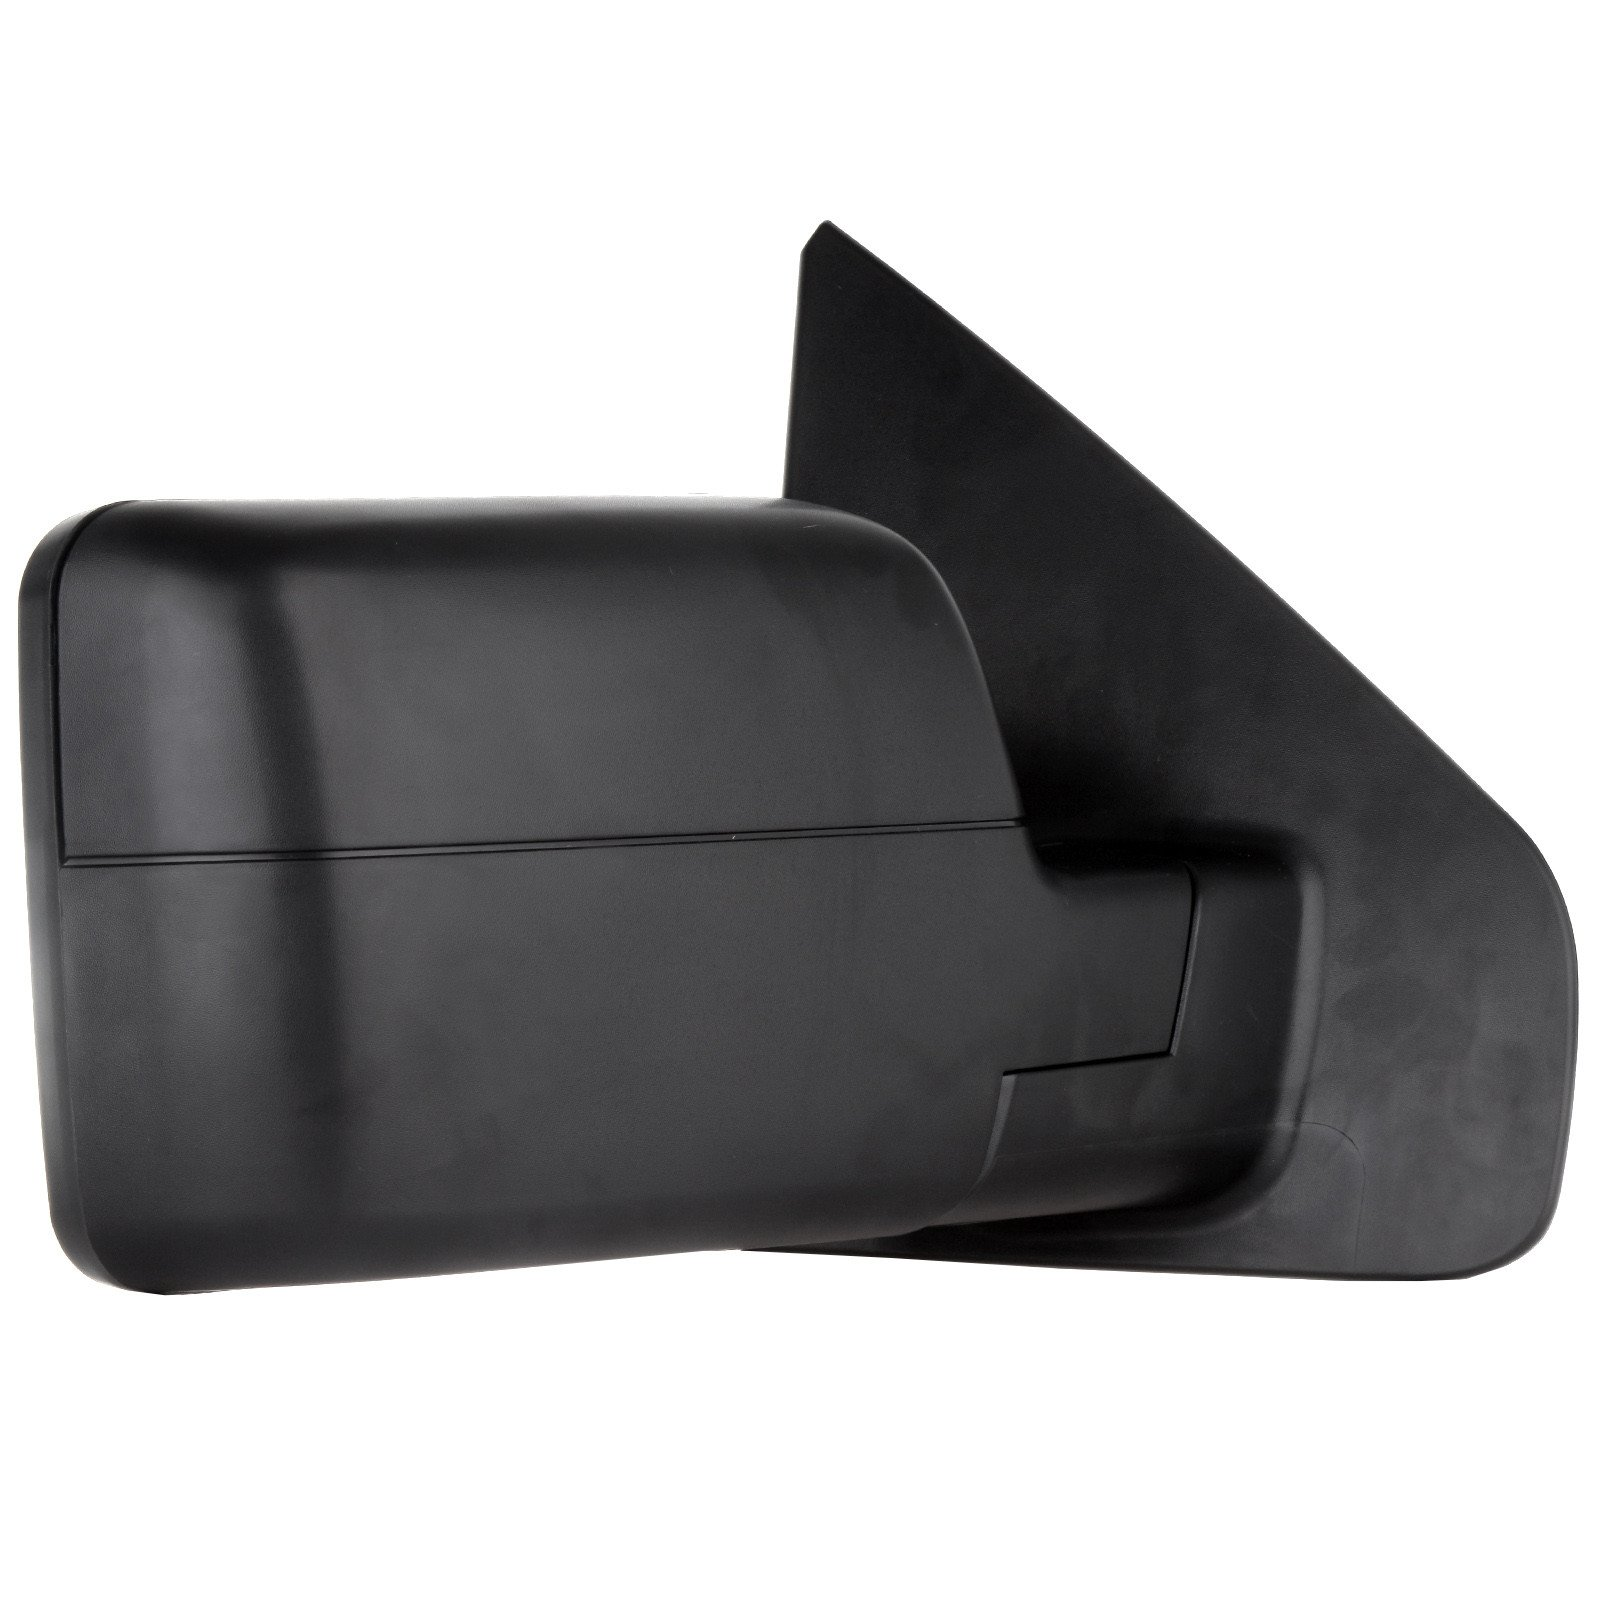 Towing Mirror For 2004-06 Ford F-150 Rear View Mirror Automotive Exterior Mirrors with Power Heated Front LED Signals (Passenger Side) by SCITOO (Image #5)